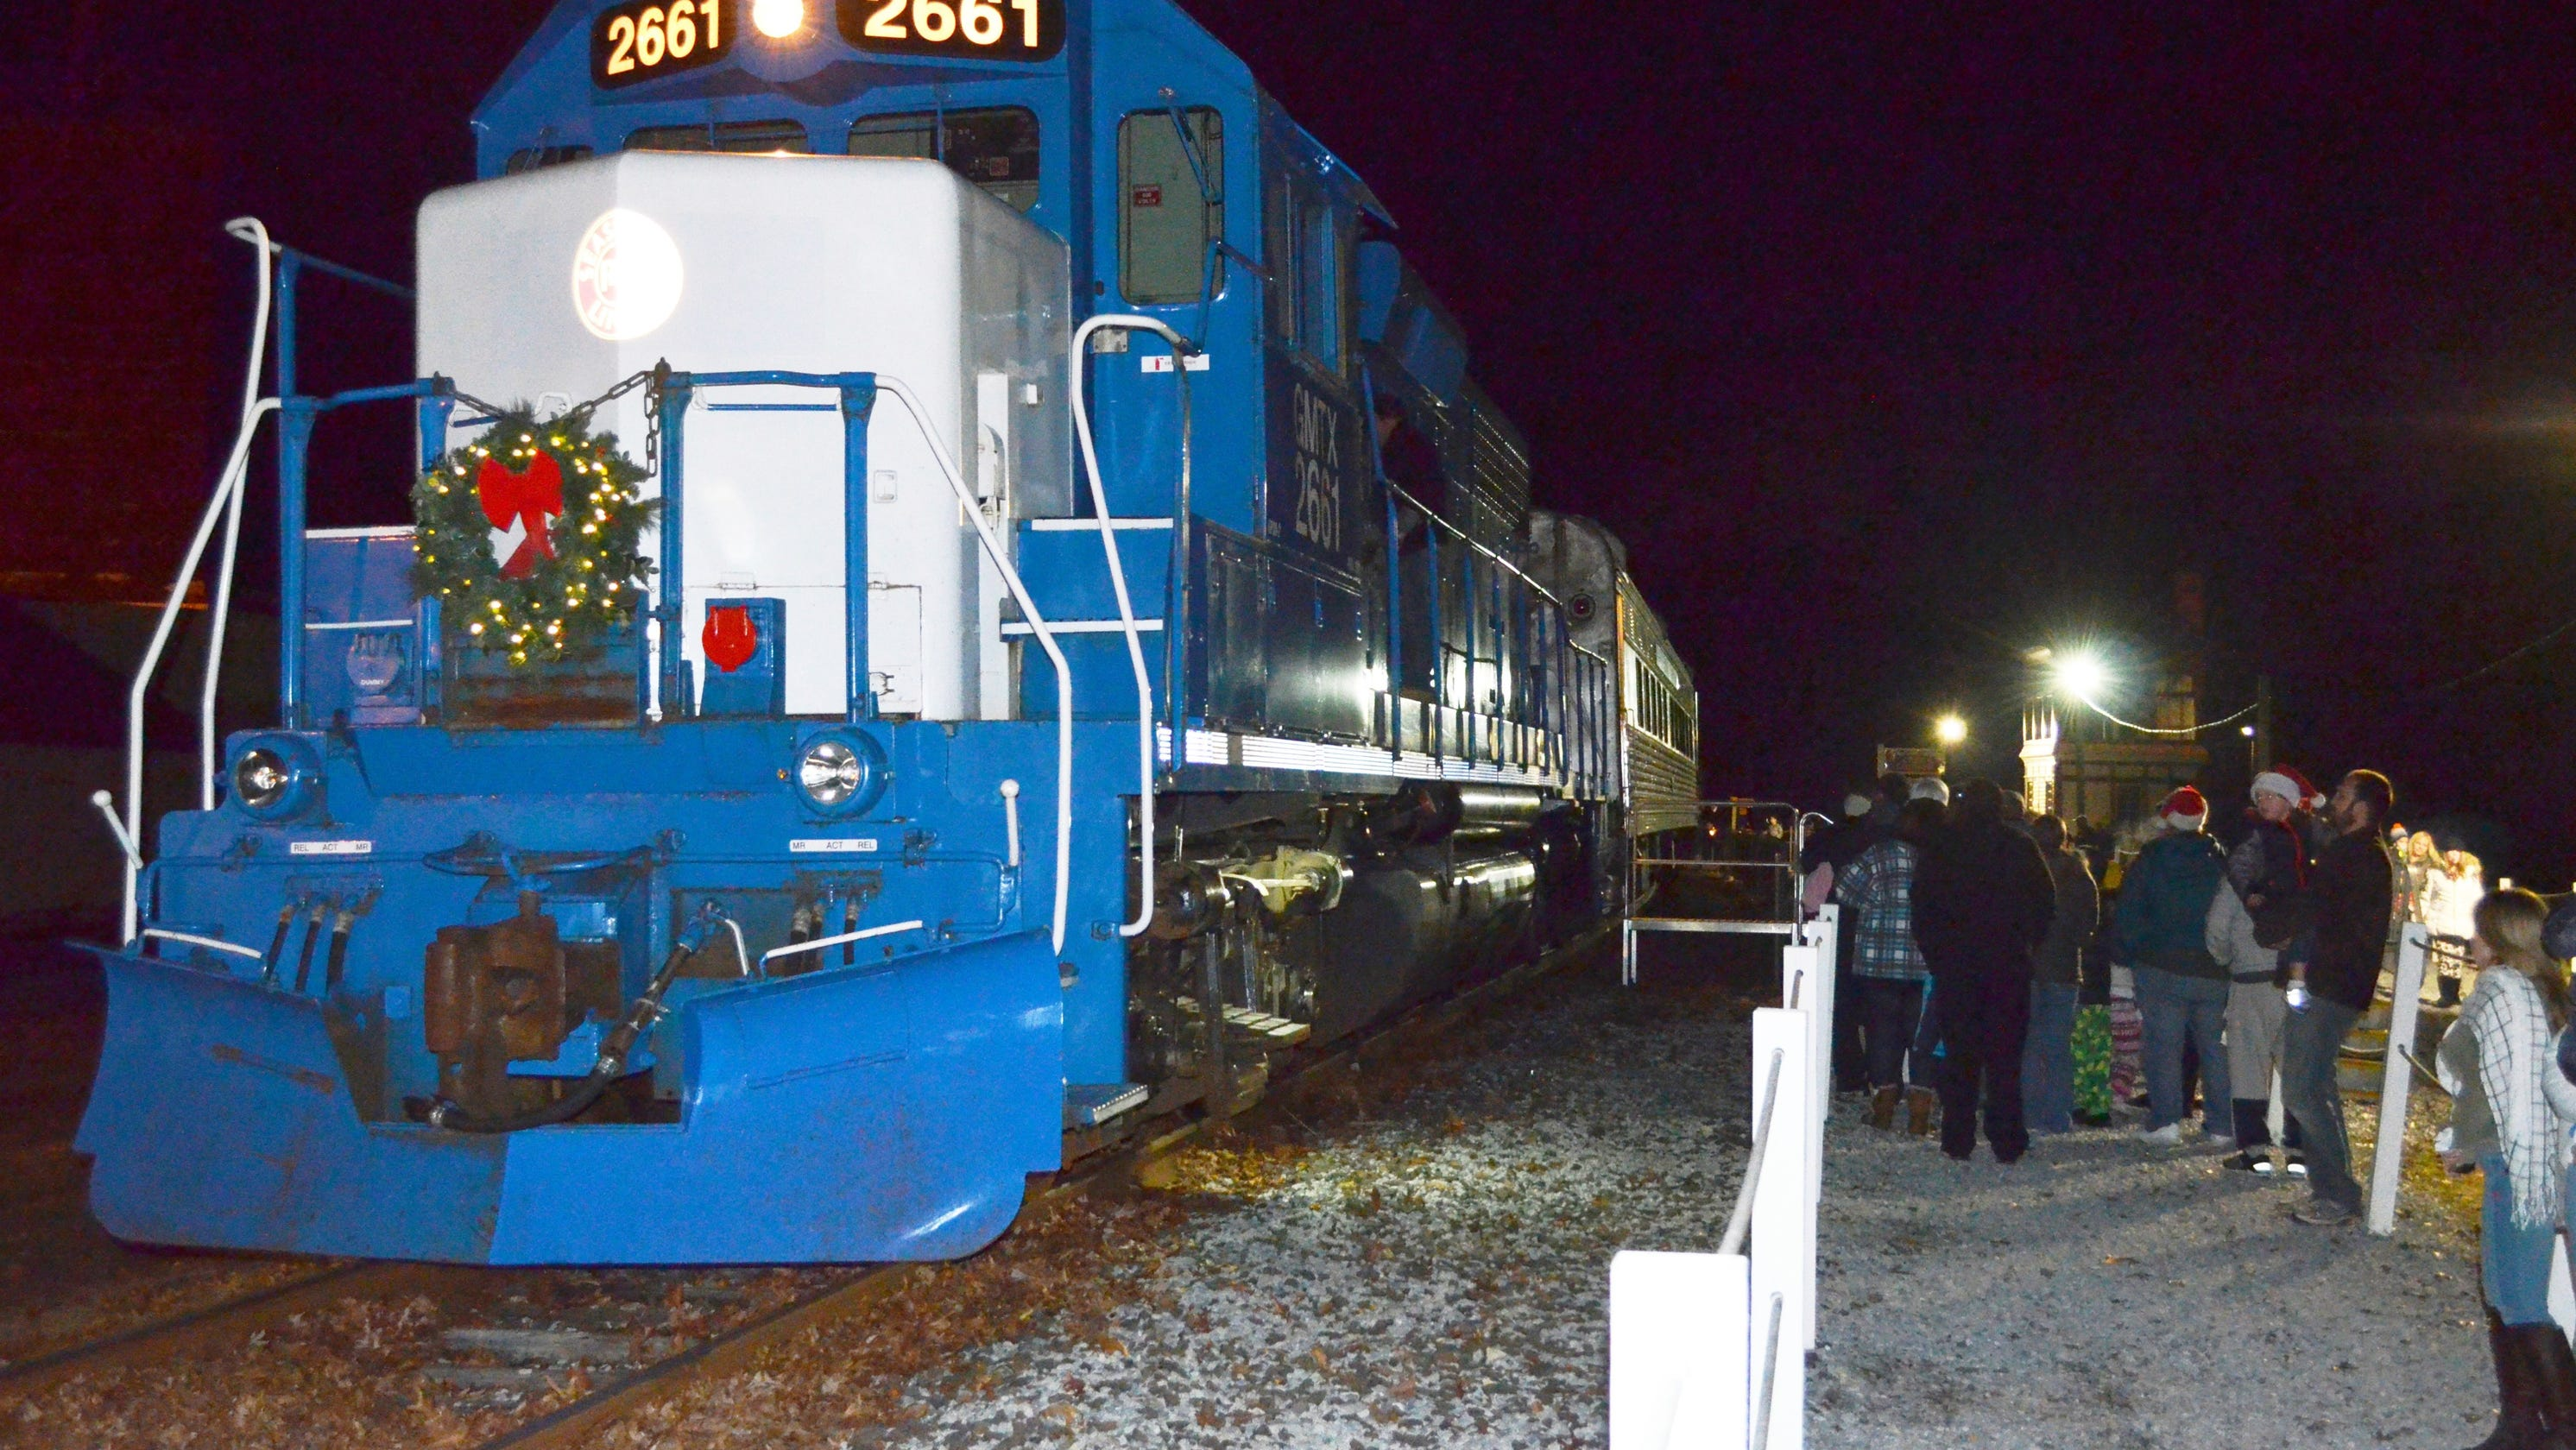 Join Santa For A Holiday Train Ride